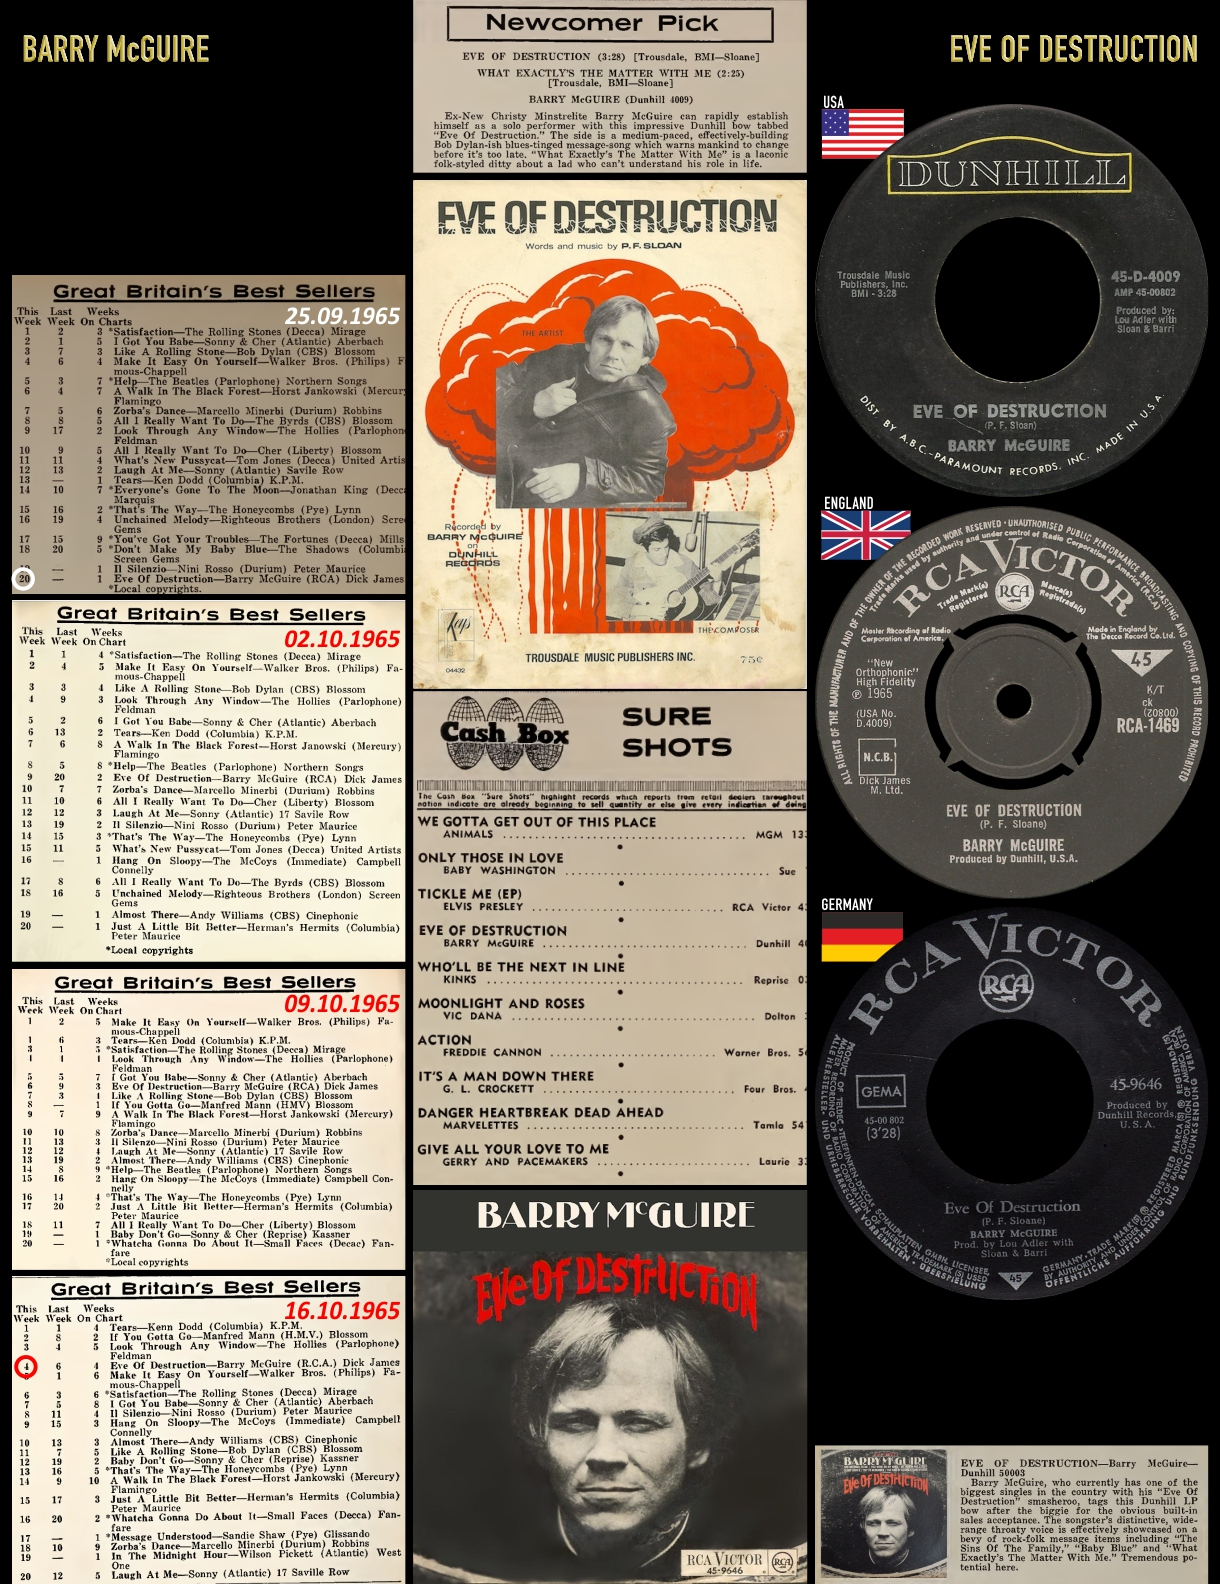 650821_Barry McGuire_Eve Of Destruction